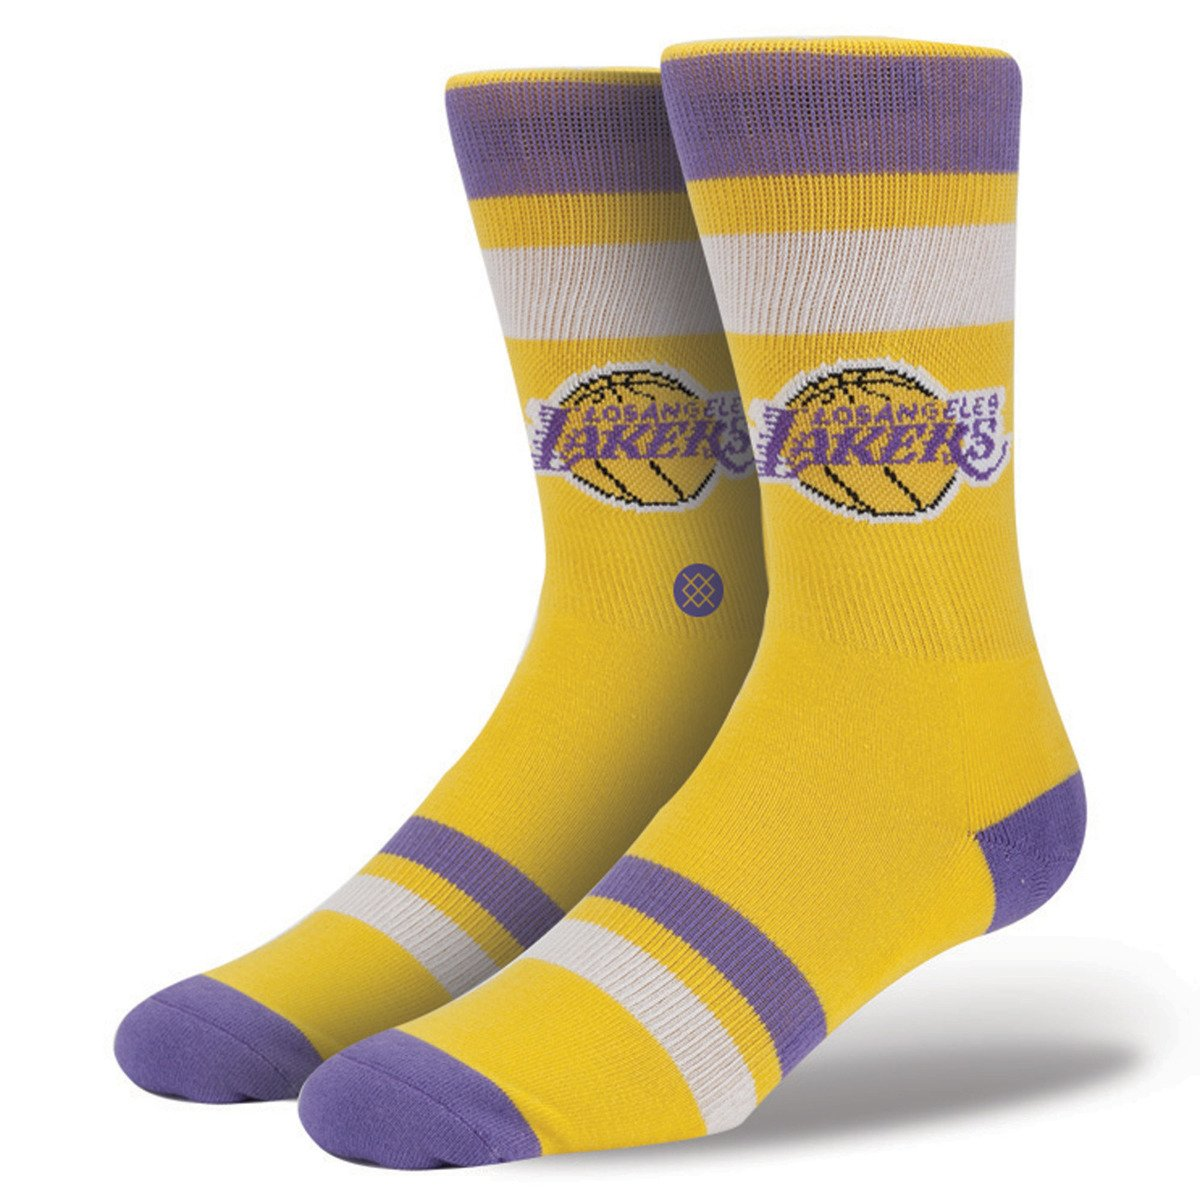 a83957a440630 Stance NBA Los Angeles Lakers Chaussettes - M313ALAK - Basketo.fr